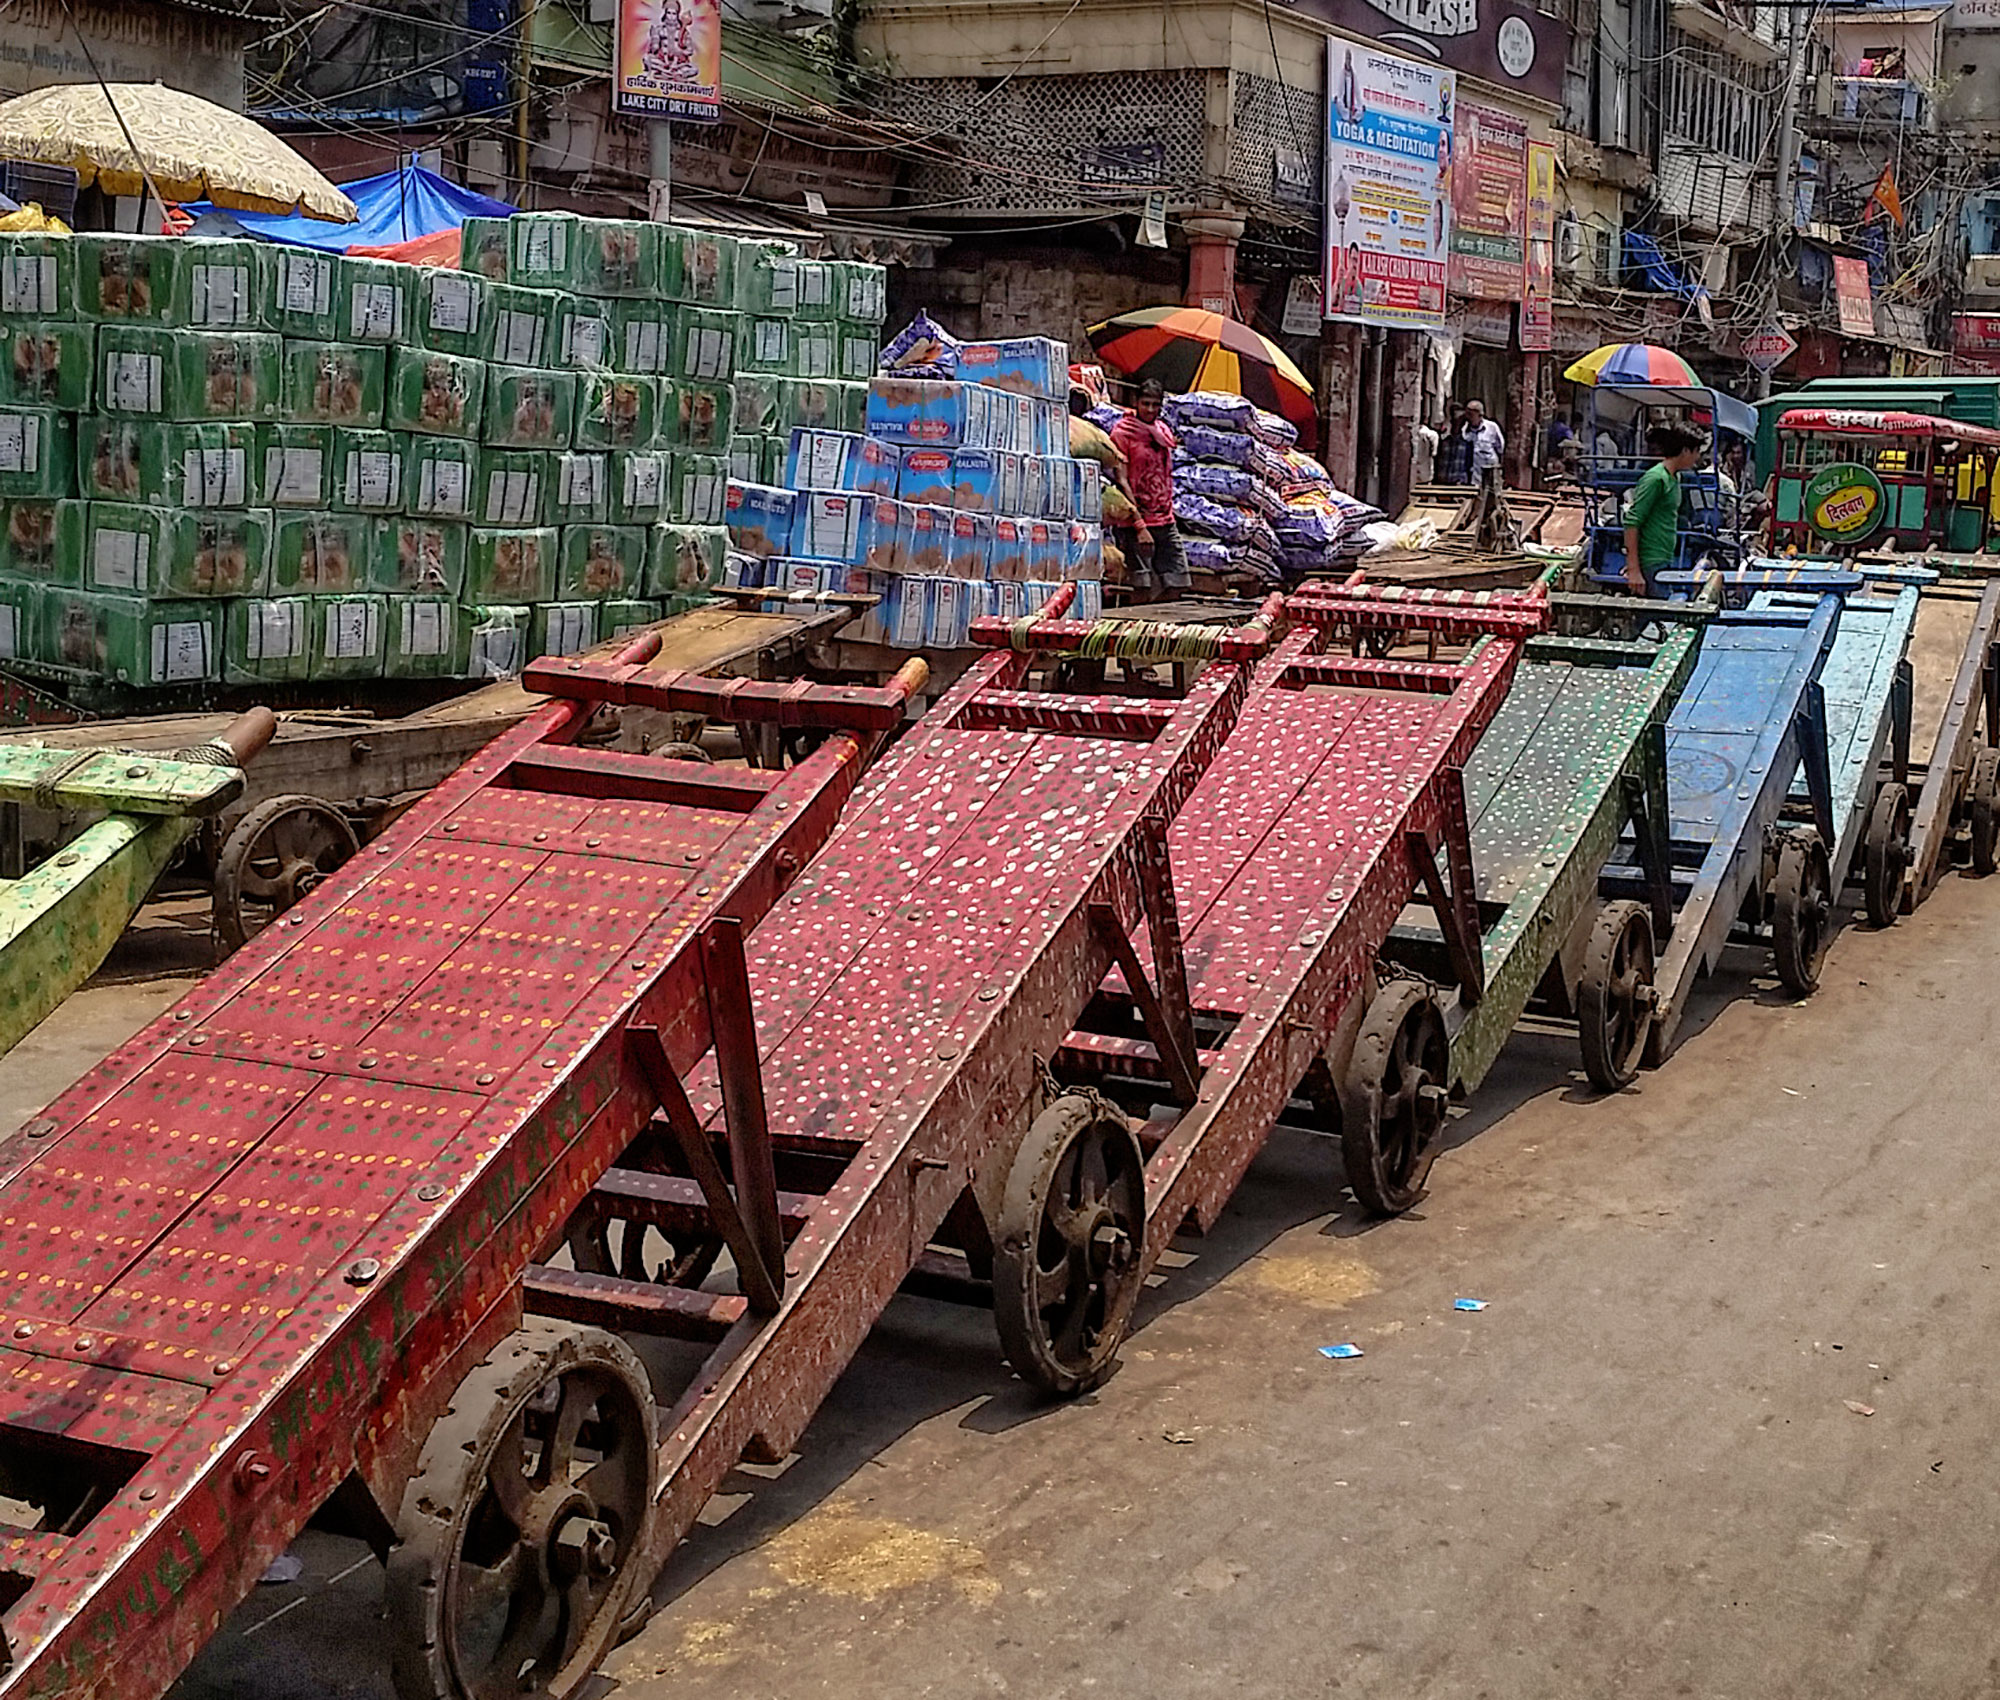 Carts outside the spice market, Old Delhi